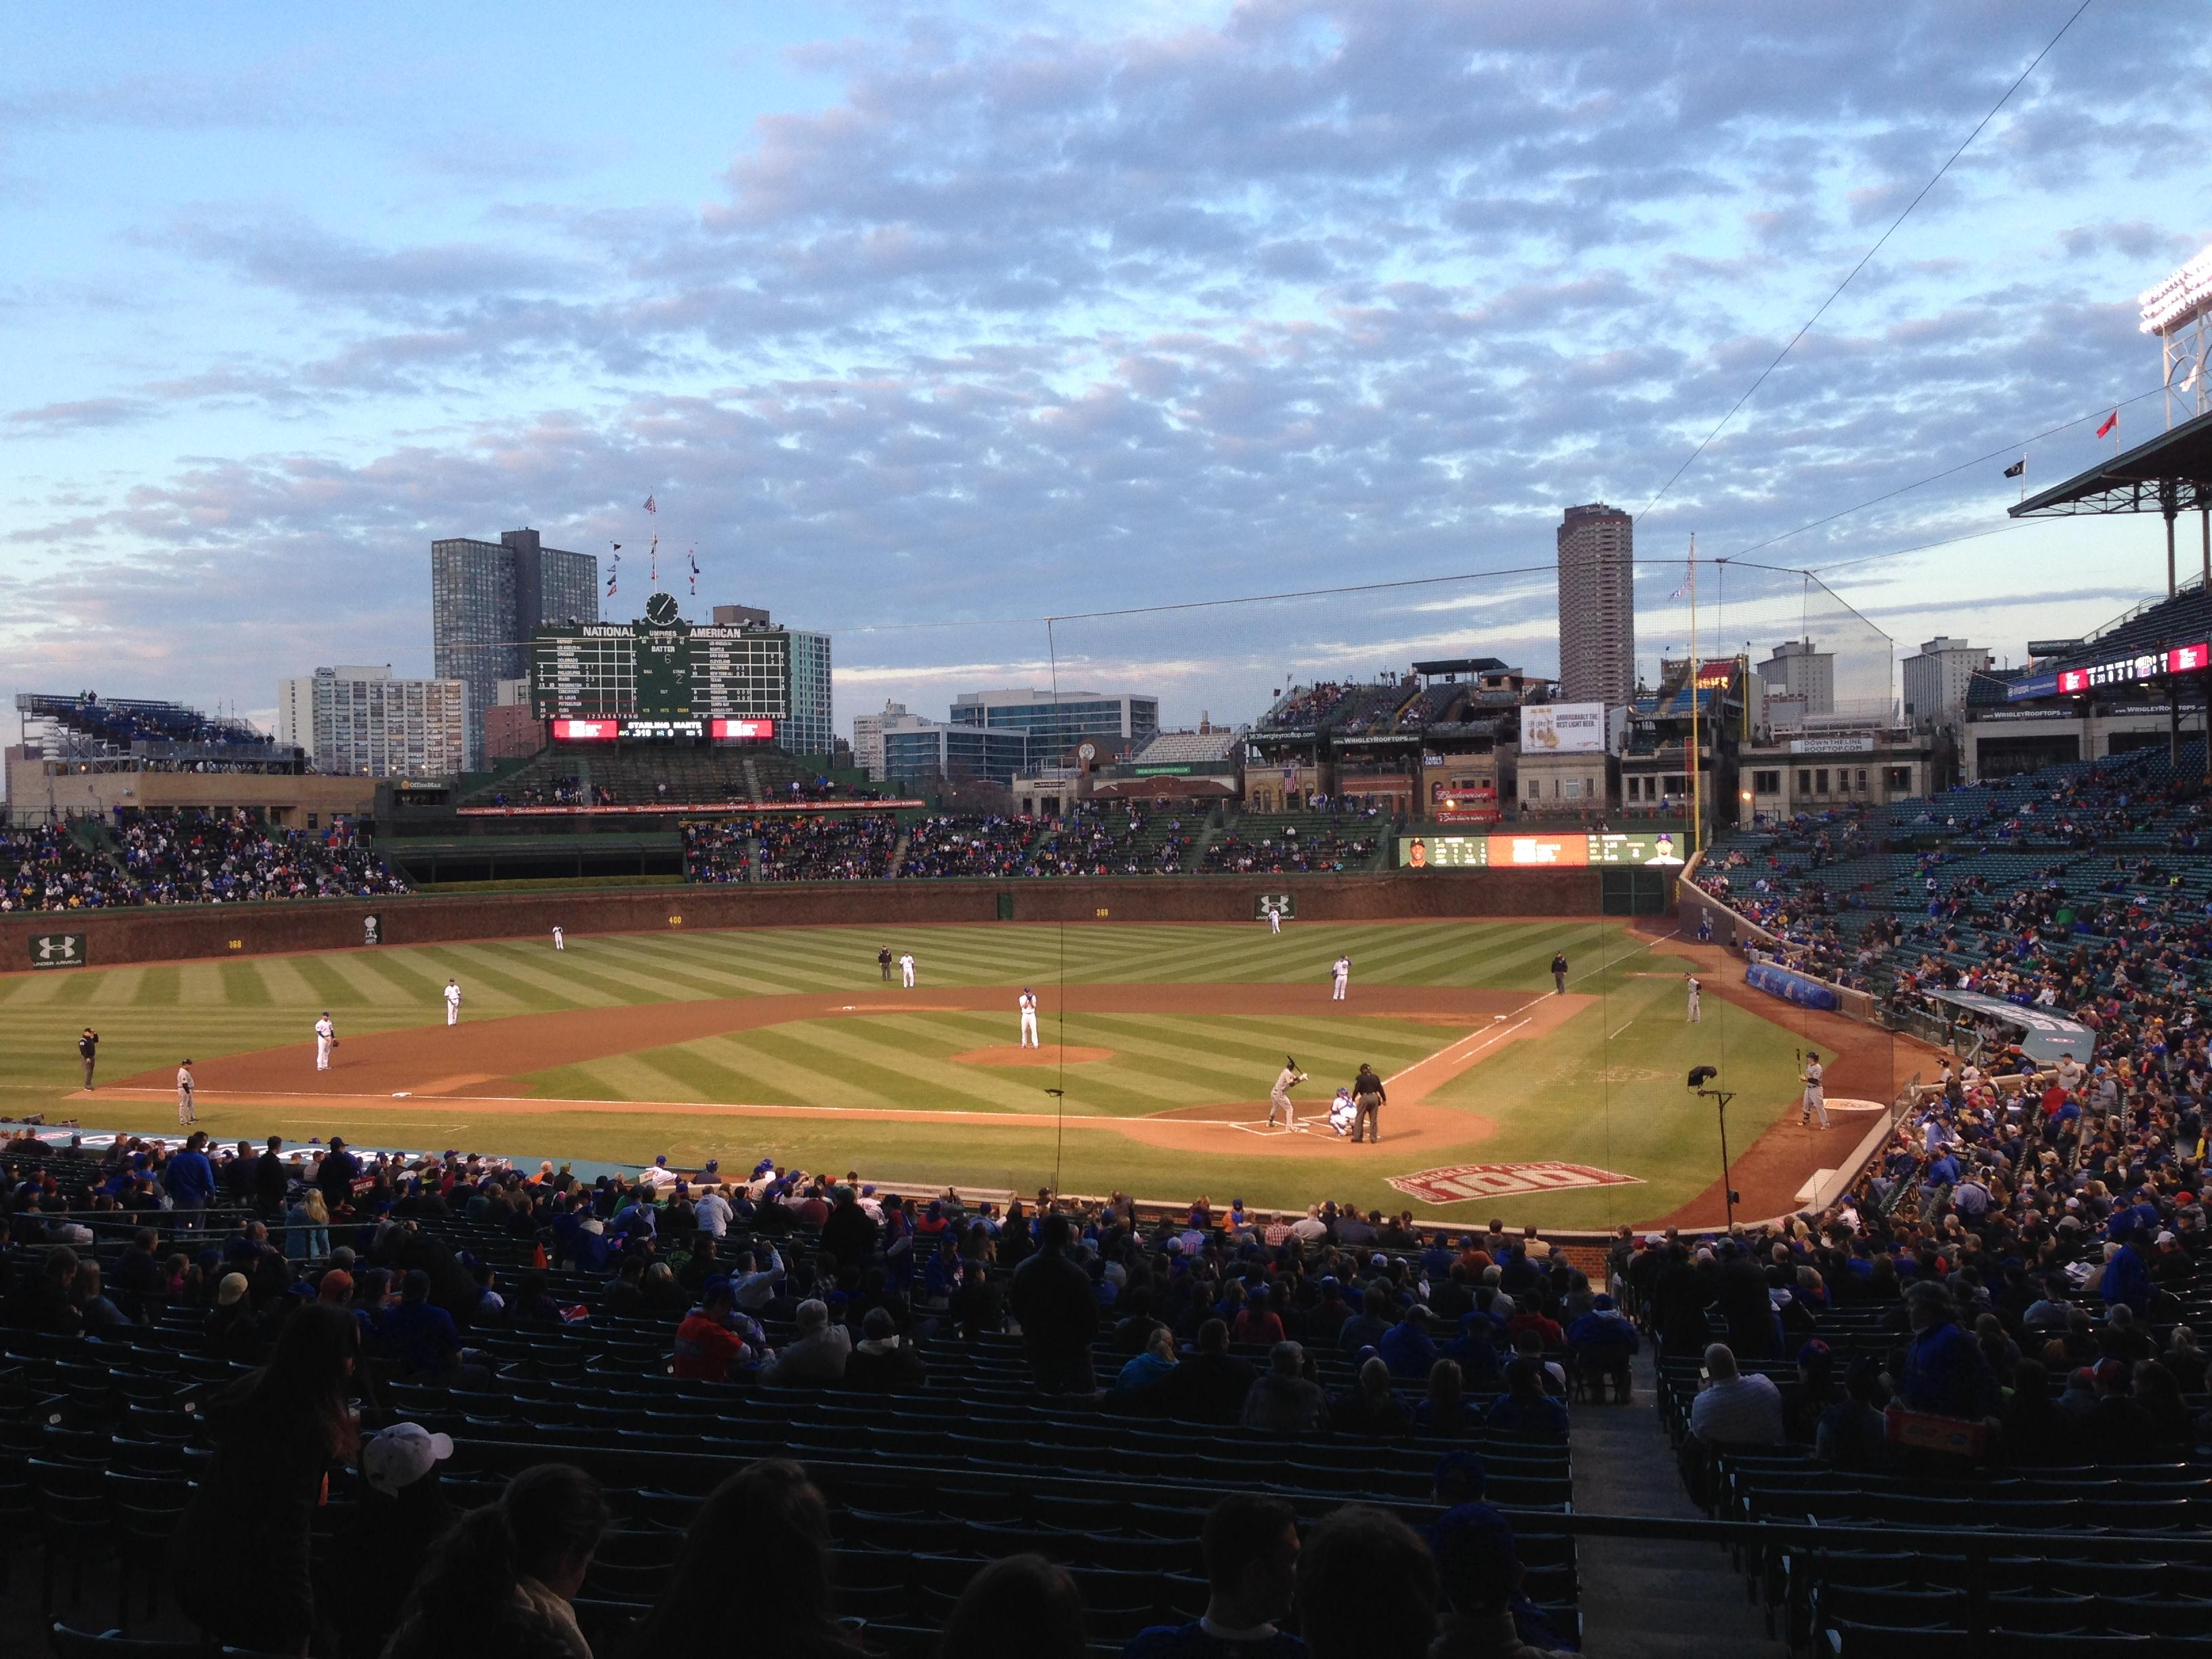 Wrigley Field section 218 row 7 seat 10 Chicago Cubs vs Pittsburgh